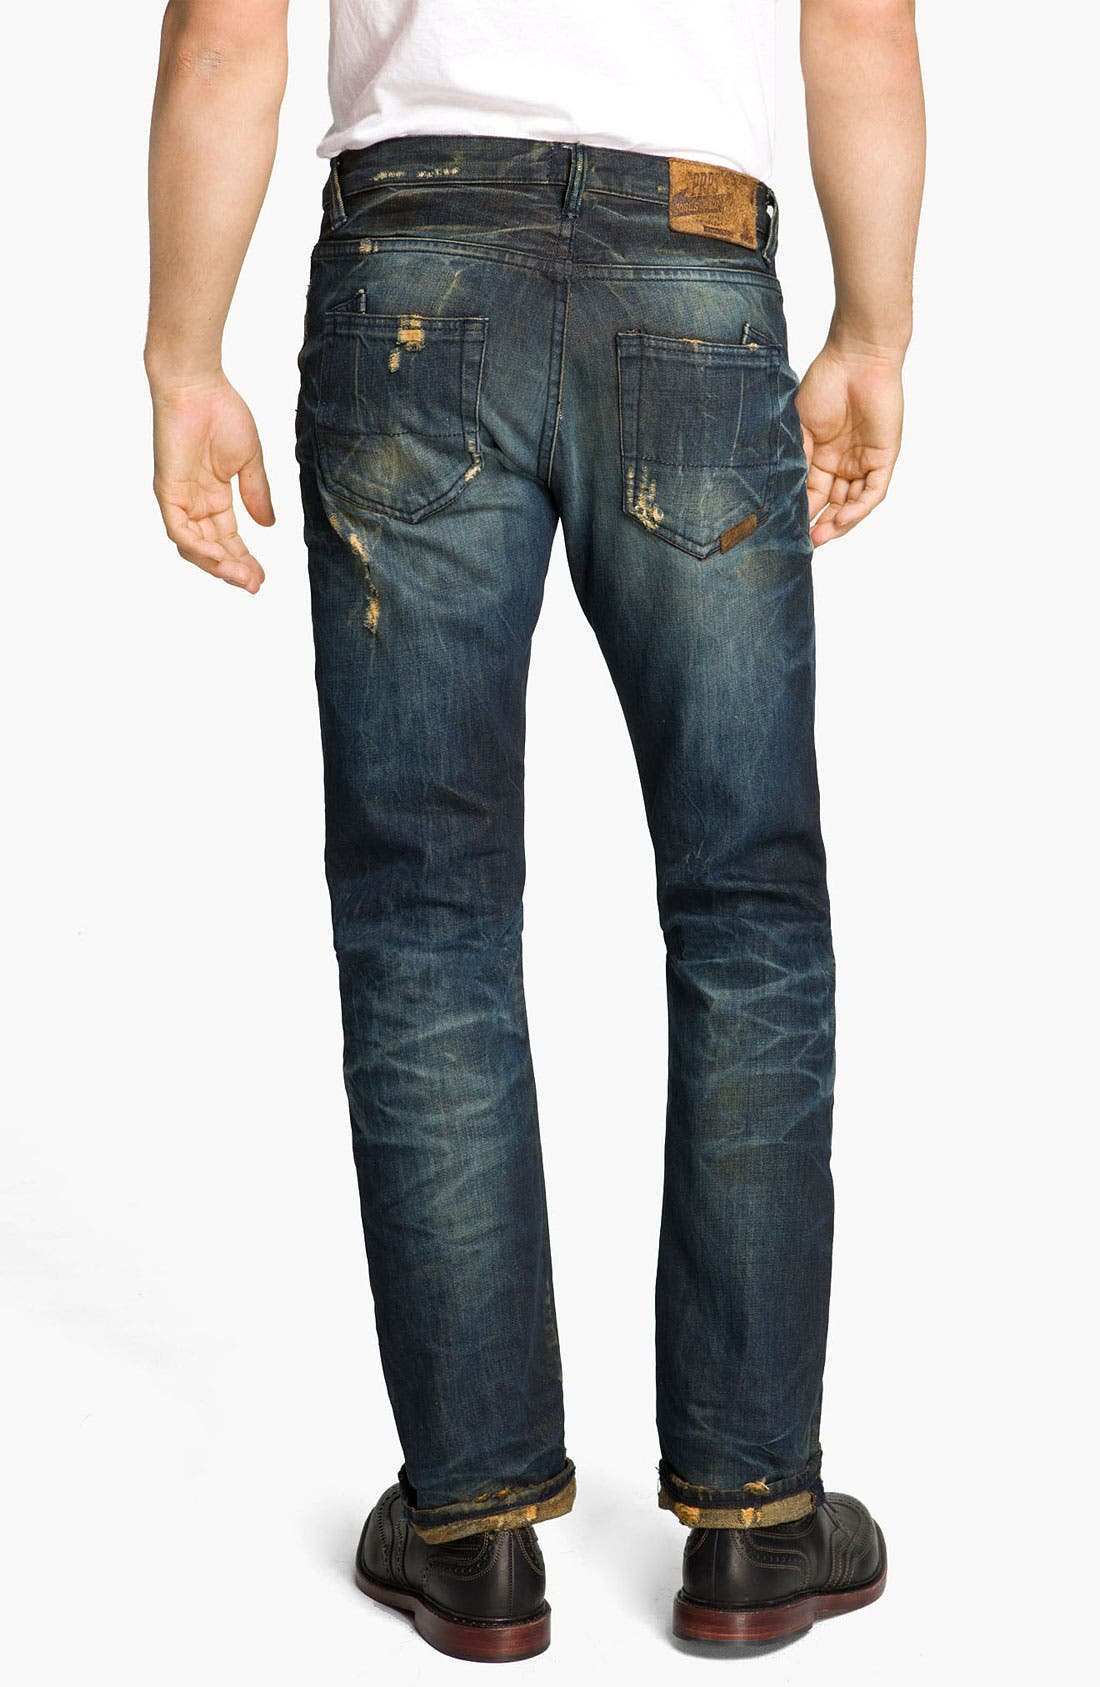 Alternate Image 1 Selected - PRPS 'Barracuda Tiger's Nest' Straight Leg Jeans (Indigo)